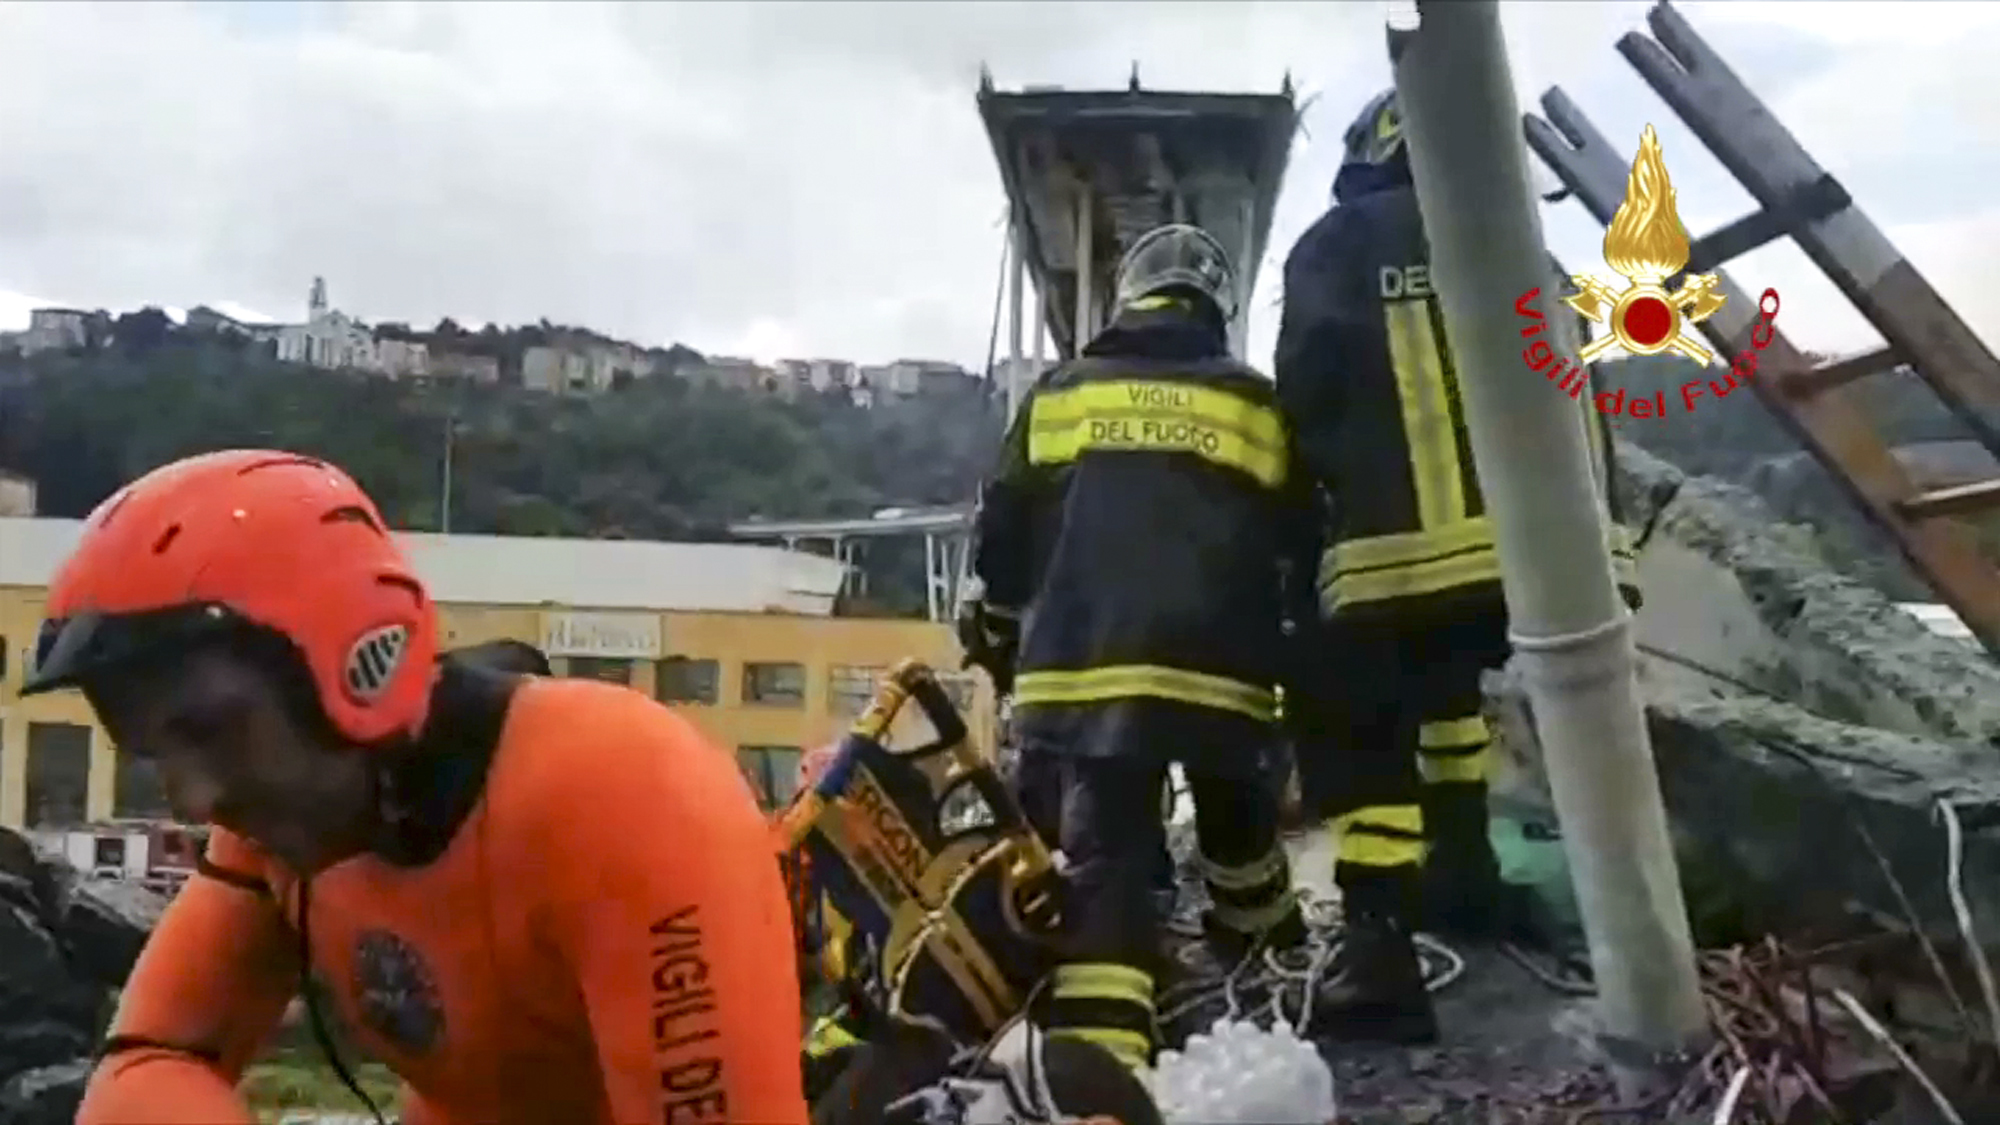 <div class='meta'><div class='origin-logo' data-origin='none'></div><span class='caption-text' data-credit='Vigili Del Fuoco via AP'>This frame taken from a video released by the Italian firefighters, shows firefighters working on the site of the collapsed Morandi highway bridge in Genoa, northern Italy.</span></div>